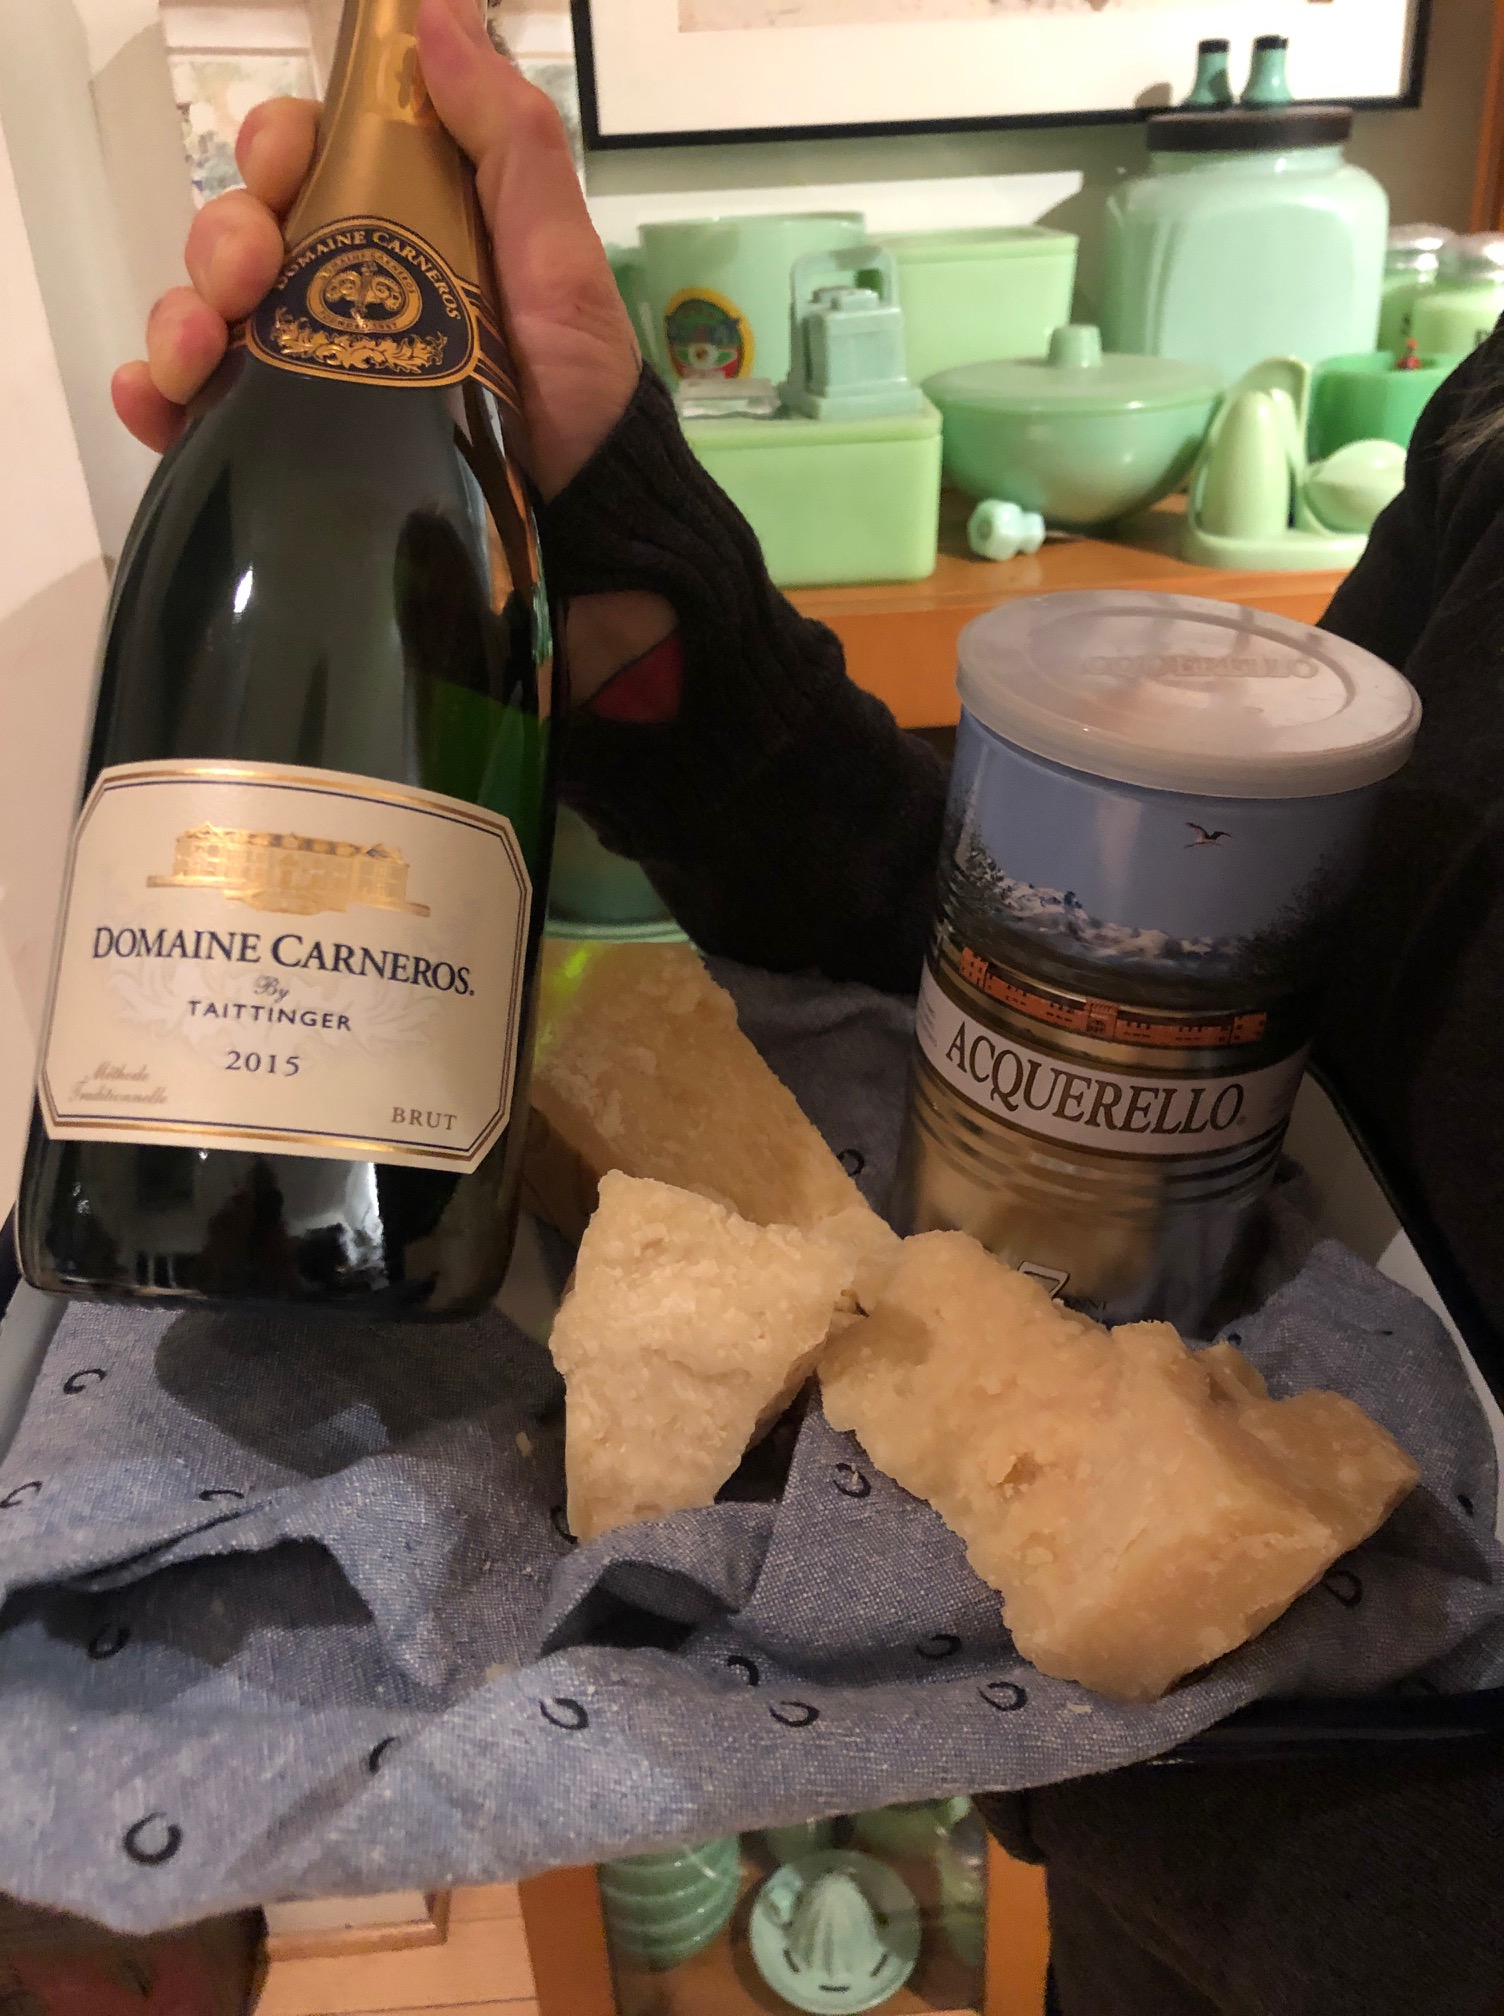 Domaine Carneros champagne with Parmigiano Reggiano